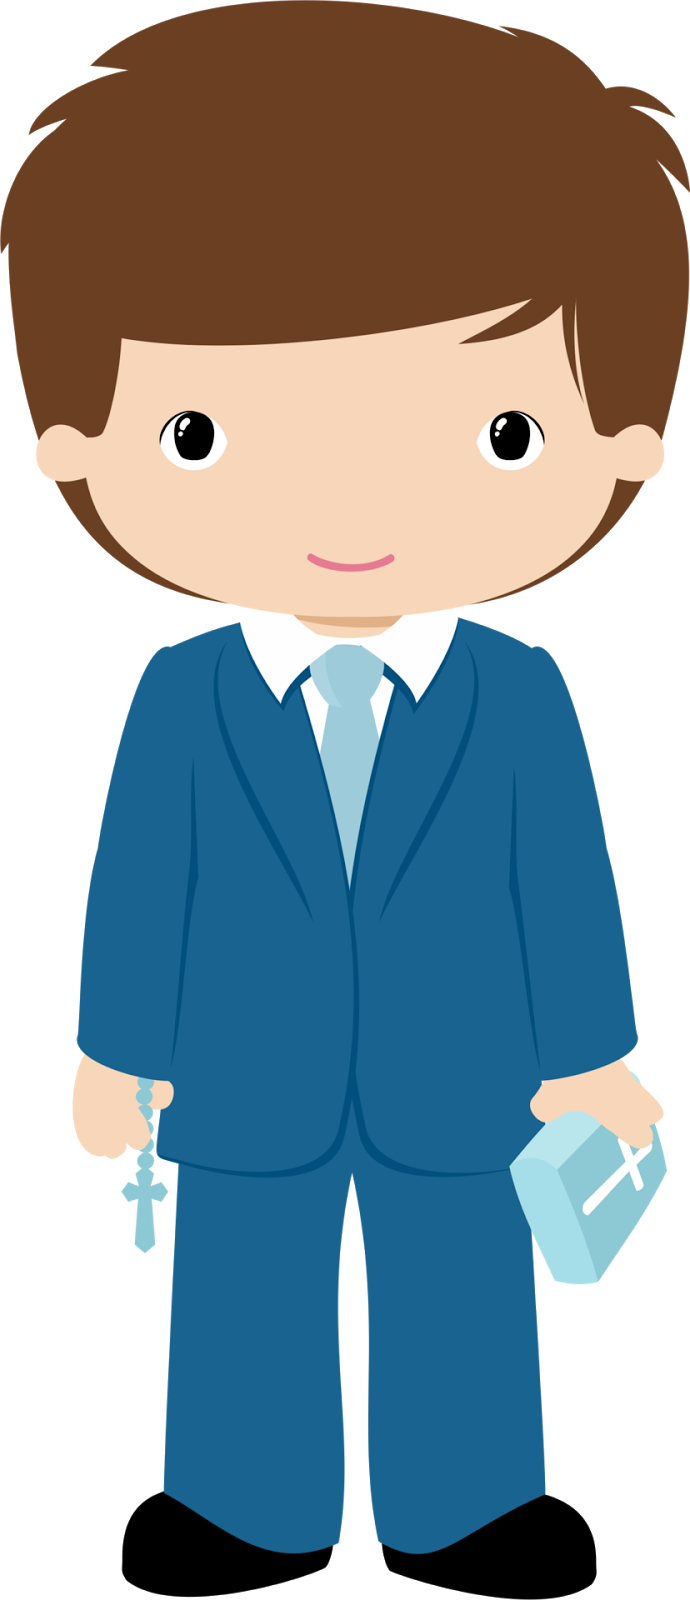 Communion clipart child. Boys in their first